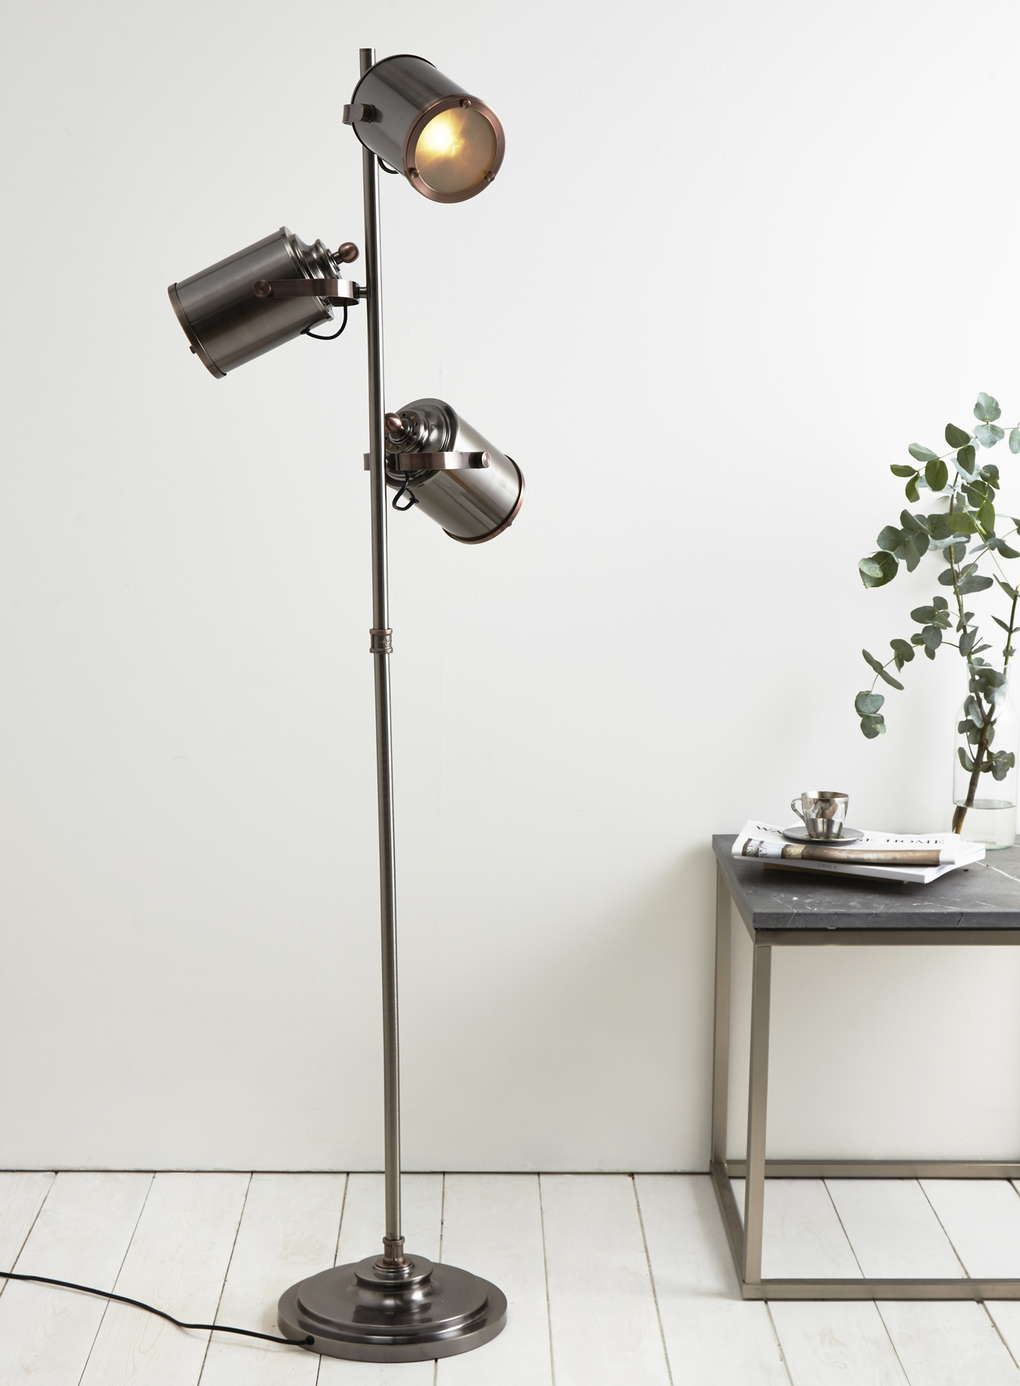 Copper isaac 3 light floor lamp bhs home inspiration pinterest copper isaac 3 light floor lamp bhs aloadofball Gallery